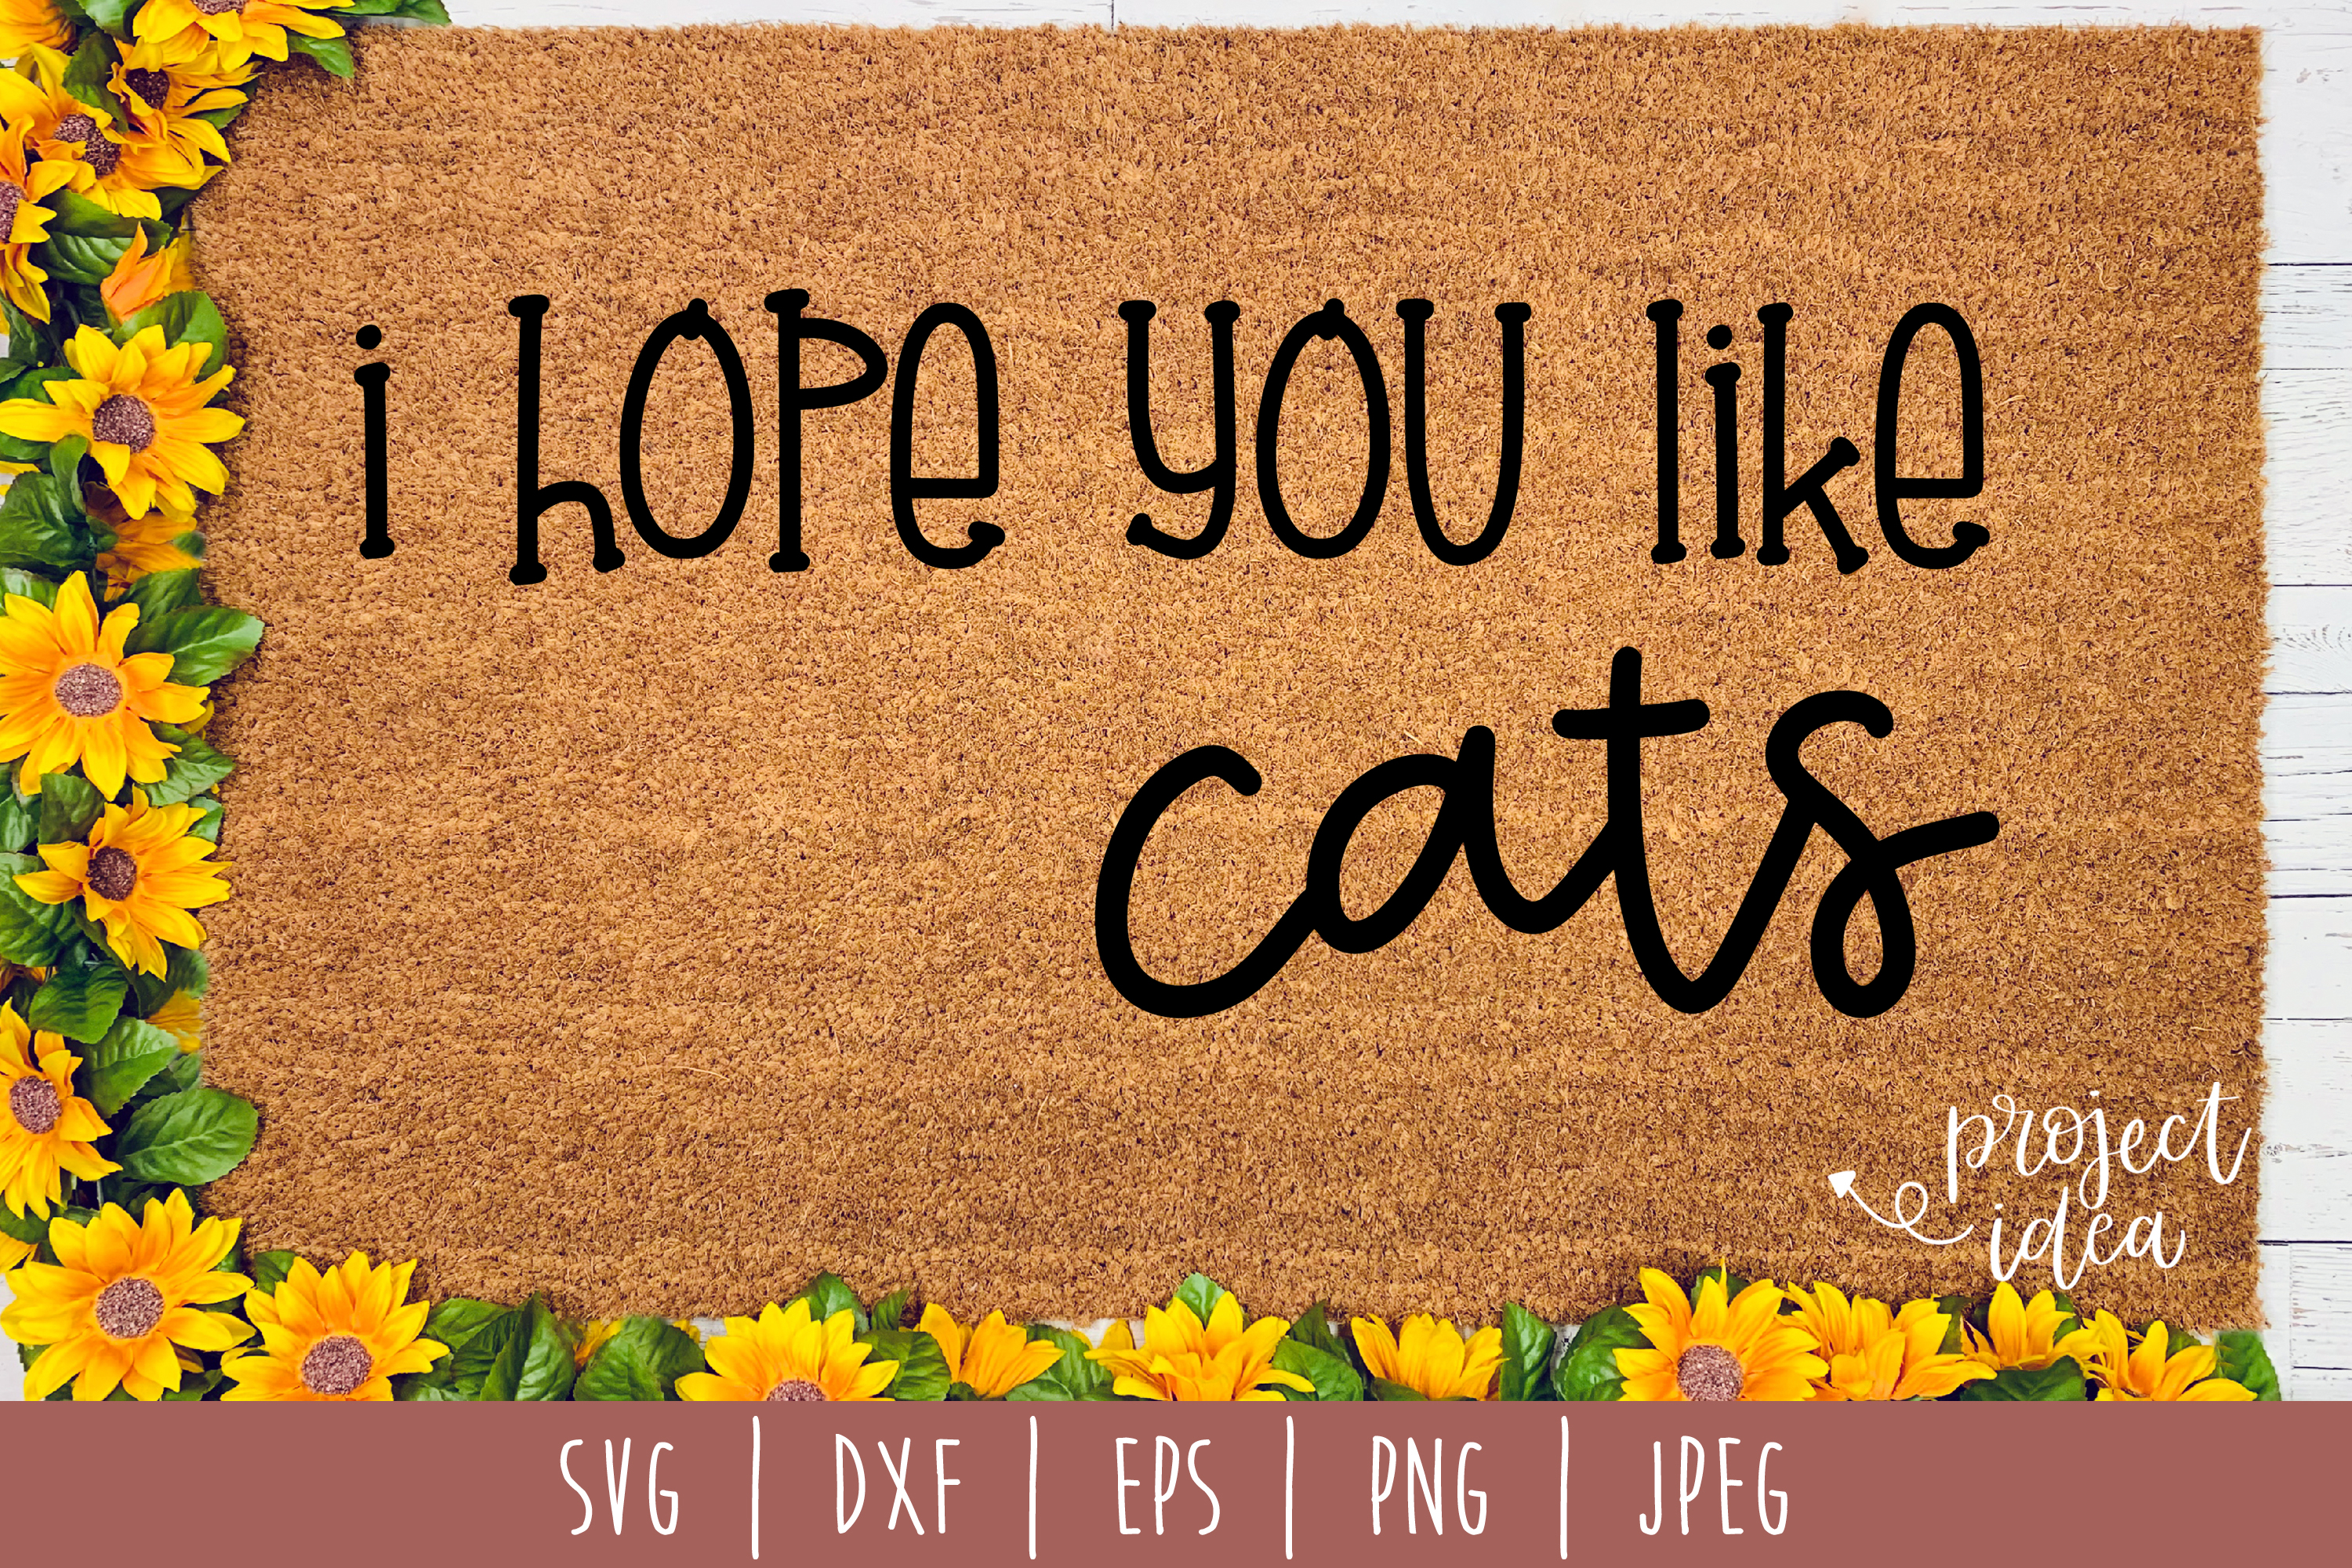 I Hope You Like Cats Doormat SVG, DXF, EPS, PNG JPEG example image 1